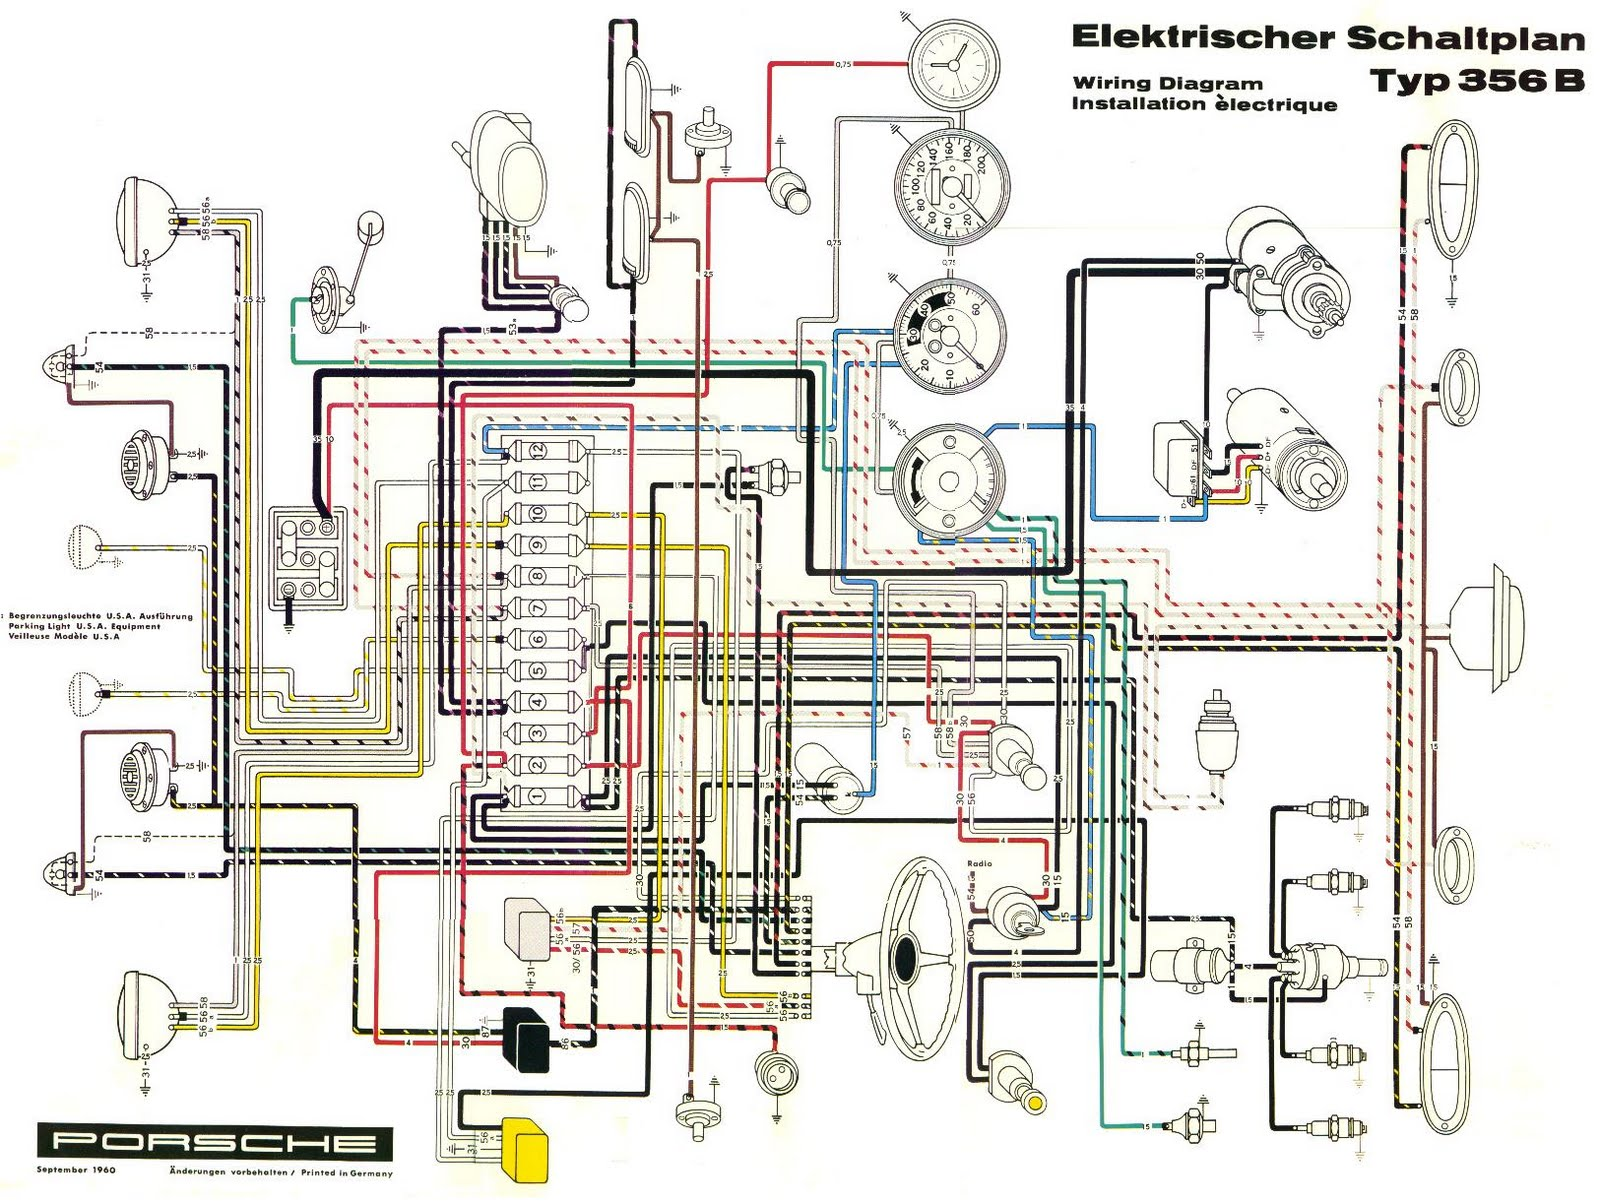 Porsche+356B+Wiring+Diagram?t=1508746814 porsche car manuals, wiring diagrams pdf & fault codes porsche 944 wiring diagram pdf at aneh.co